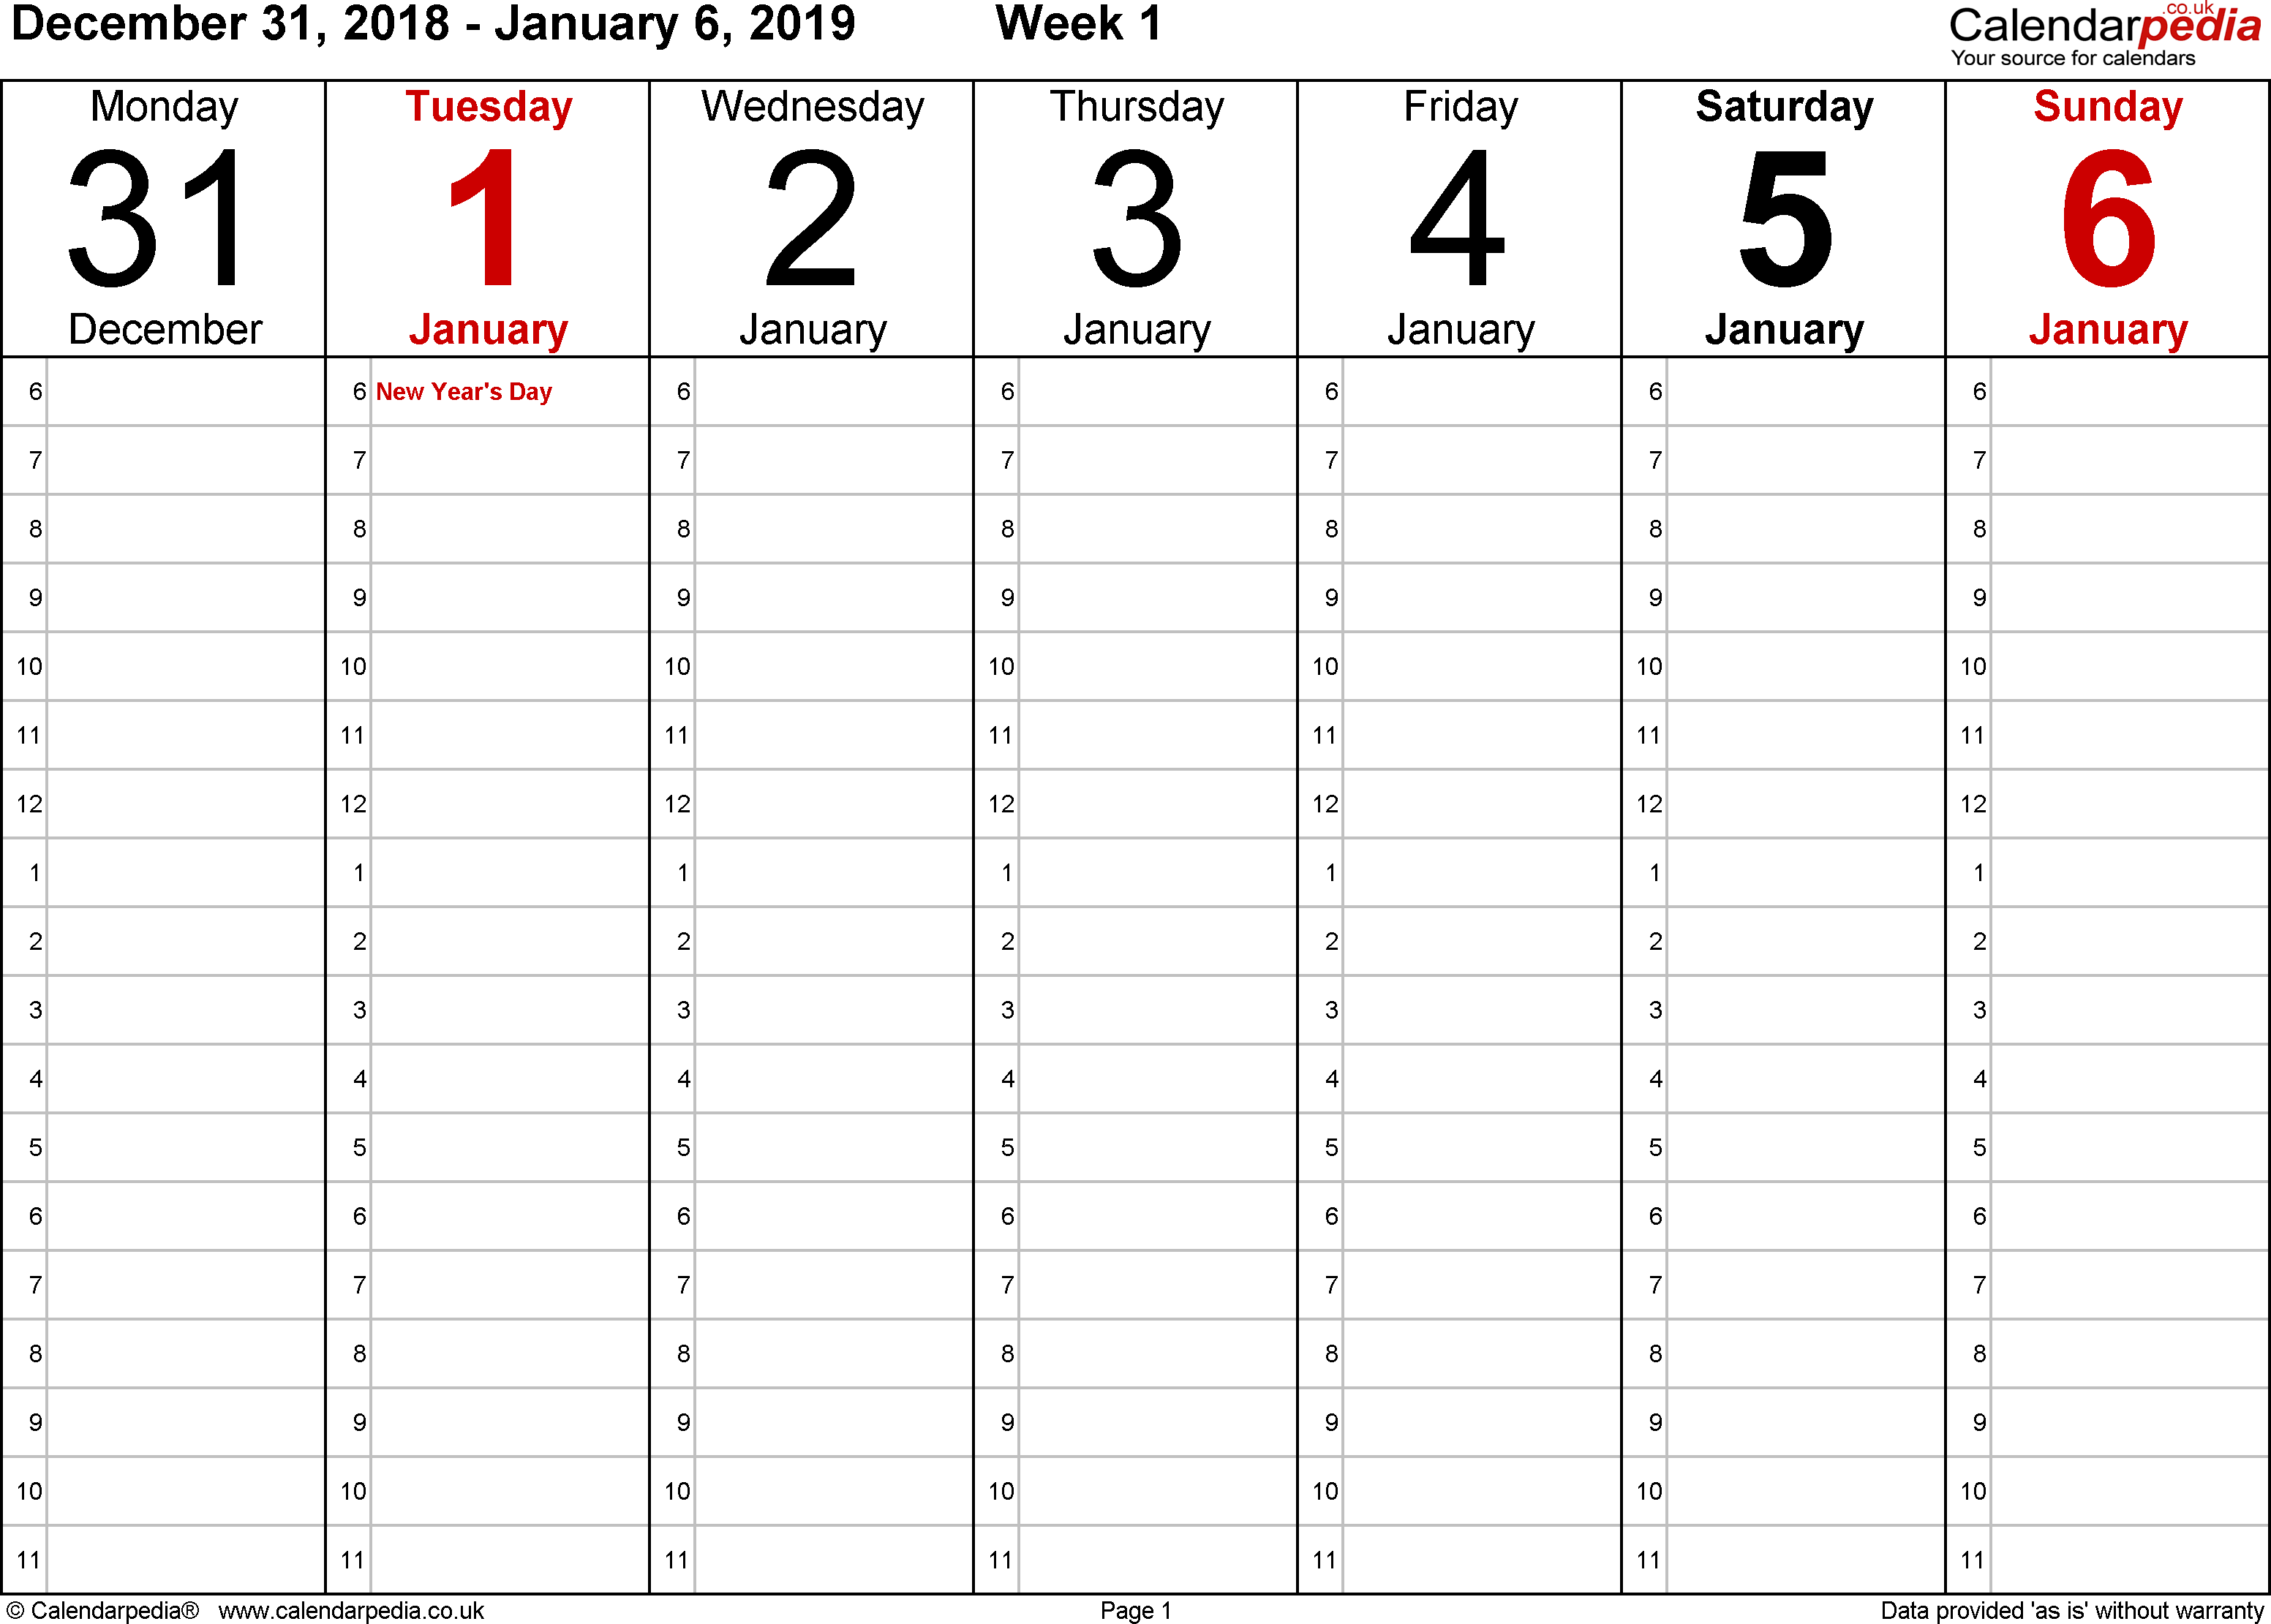 Excel template 1: Weekly calendar 2019, landscape orientation, 53 pages (1 calendar week on 1 page), time management layout (showing 18 hours per day from 6am to midnight in 1 hour steps)